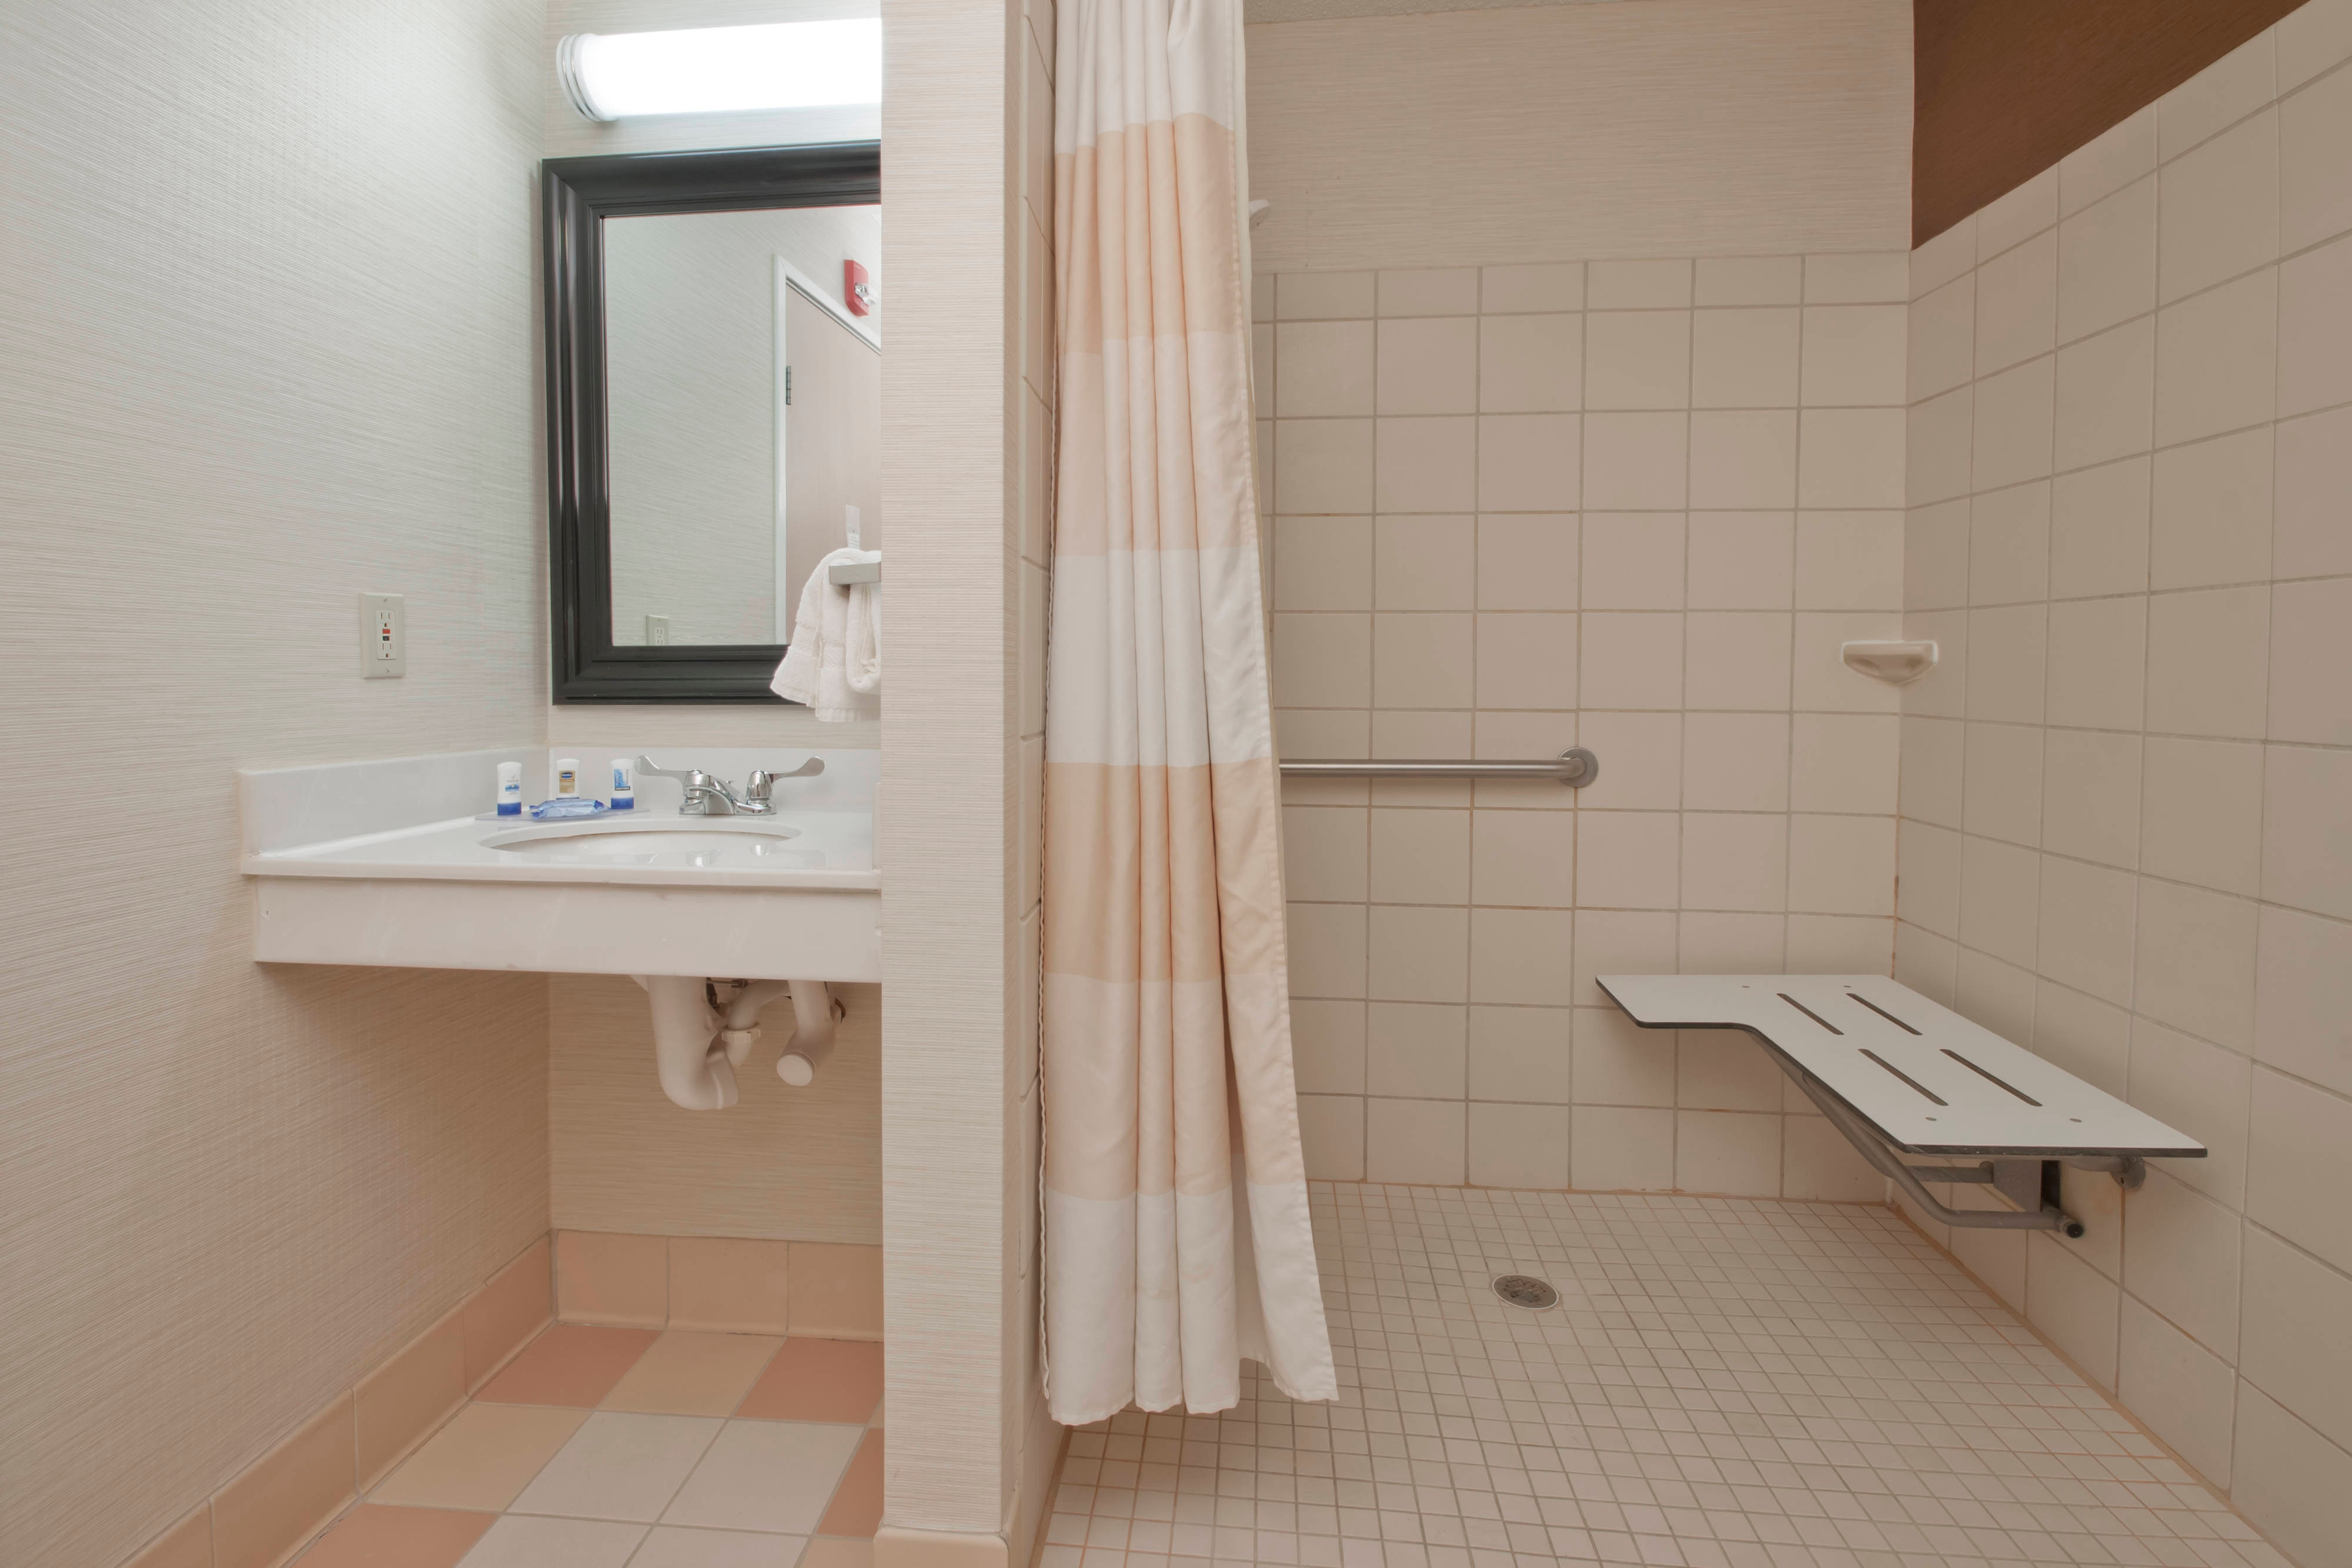 Bozeman Montana Hotel Accessible Shower